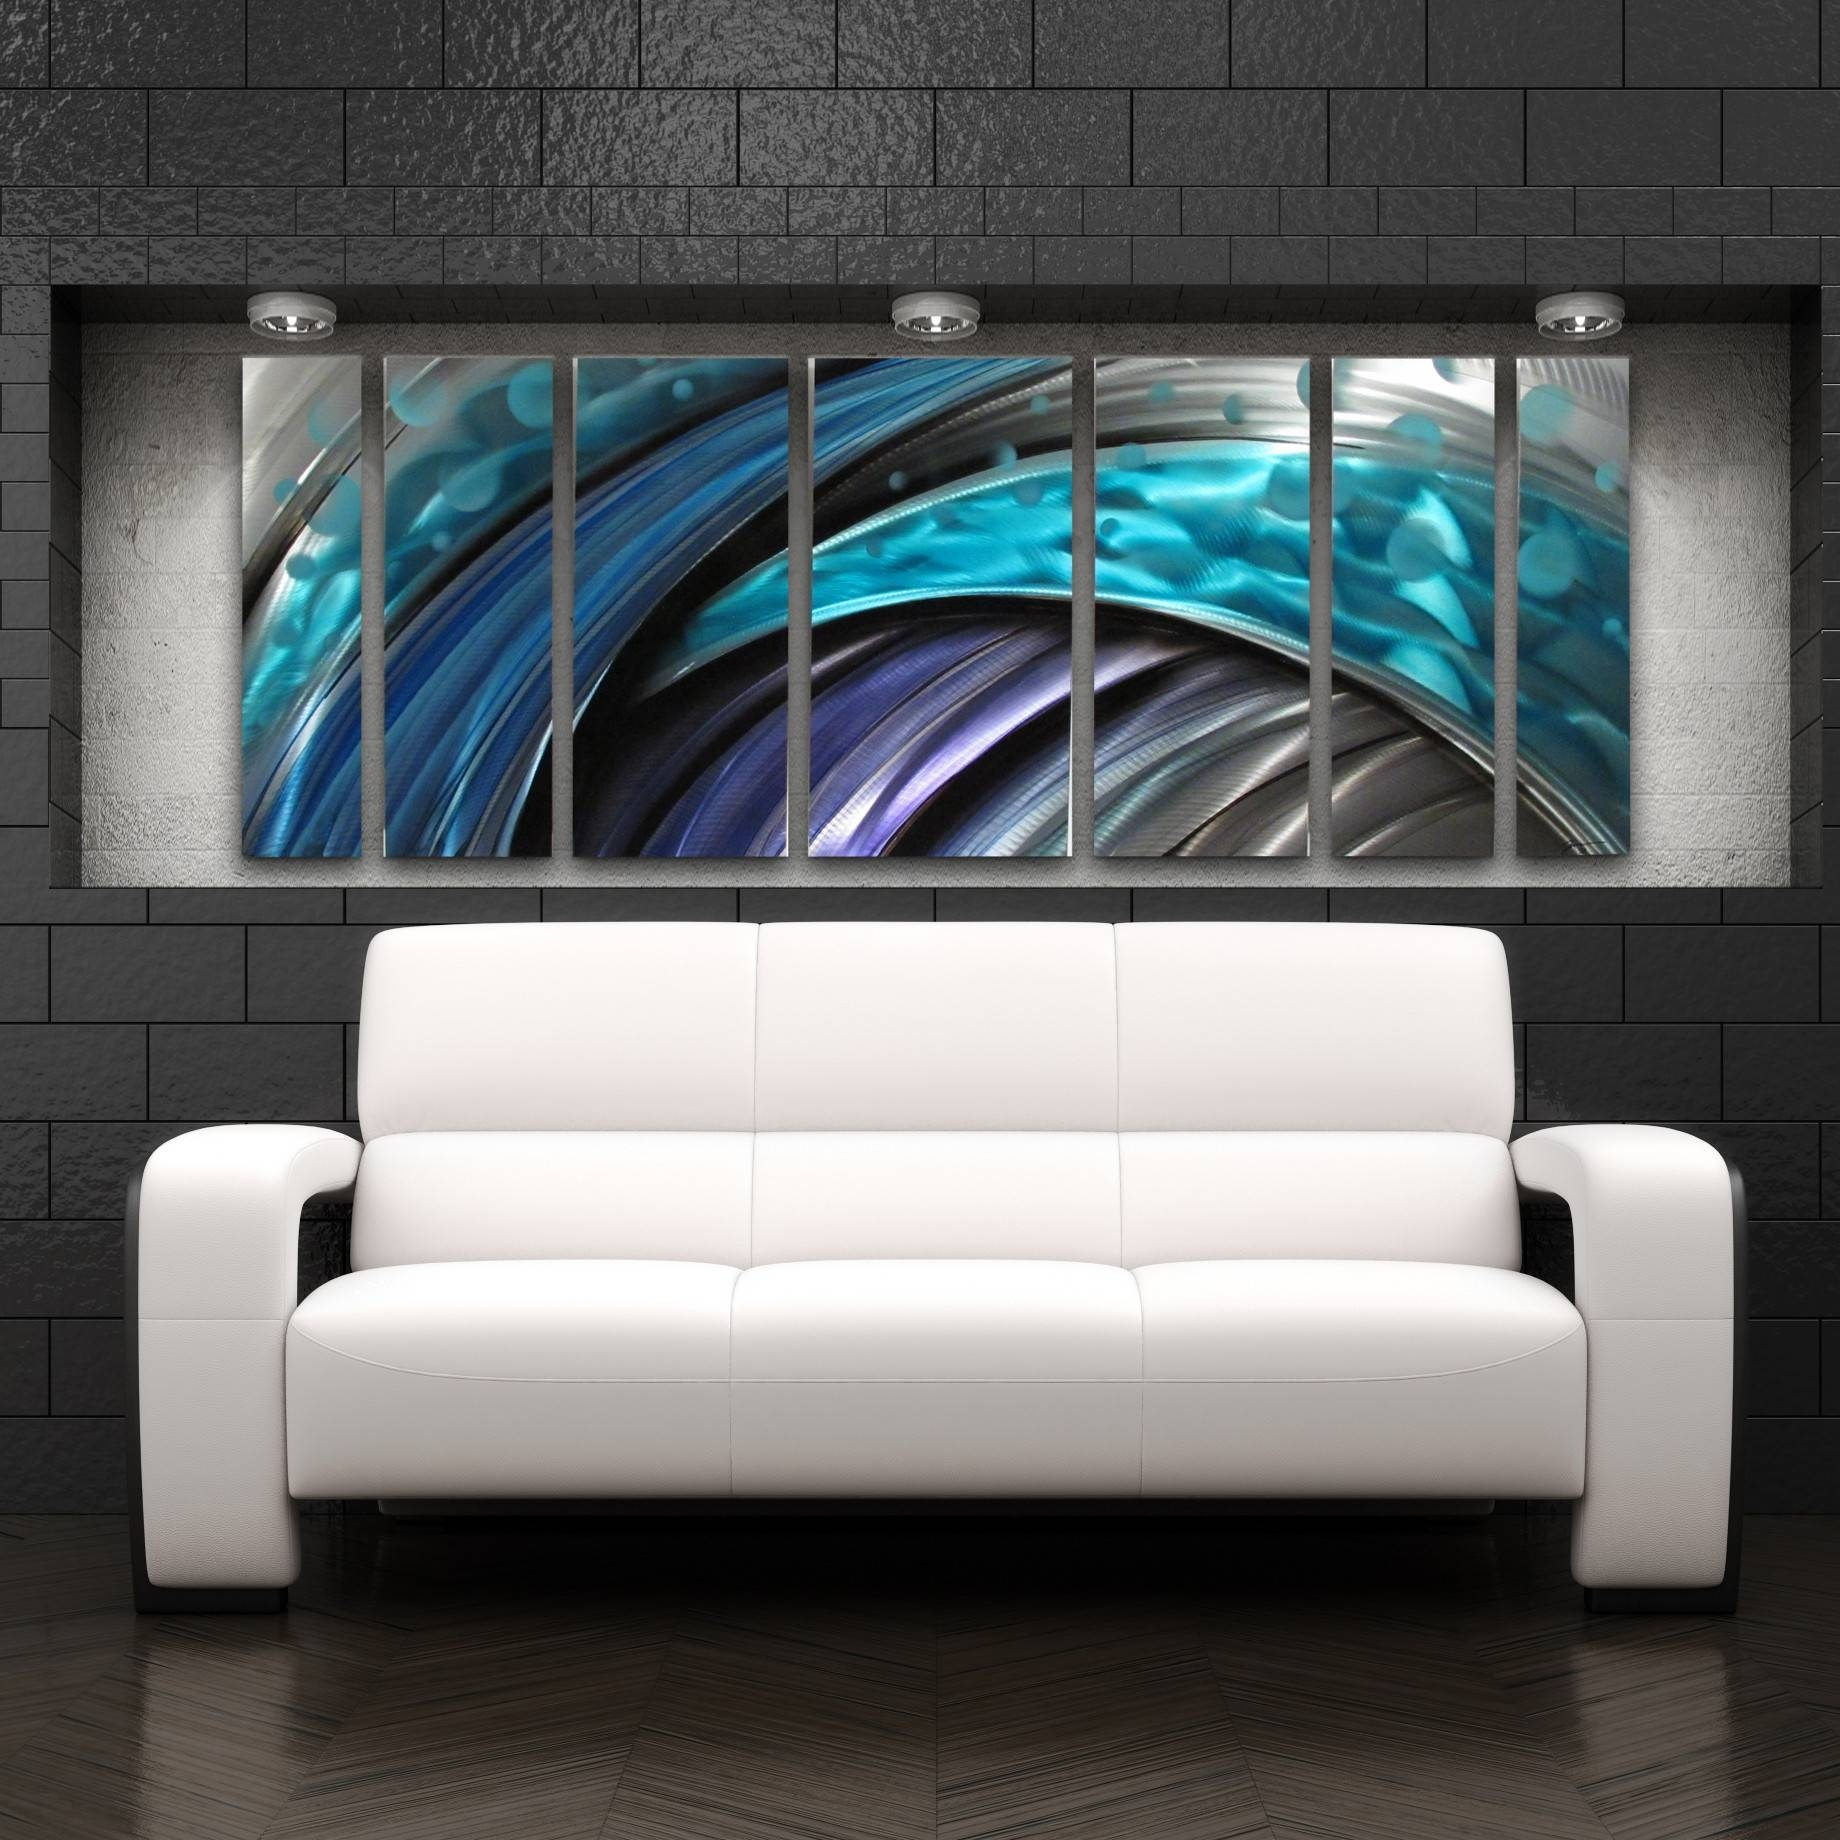 Facts That Nobody Told You About Contemporary Metal Wall Art In 2018 Modern Metal Wall Art Decors (View 3 of 20)